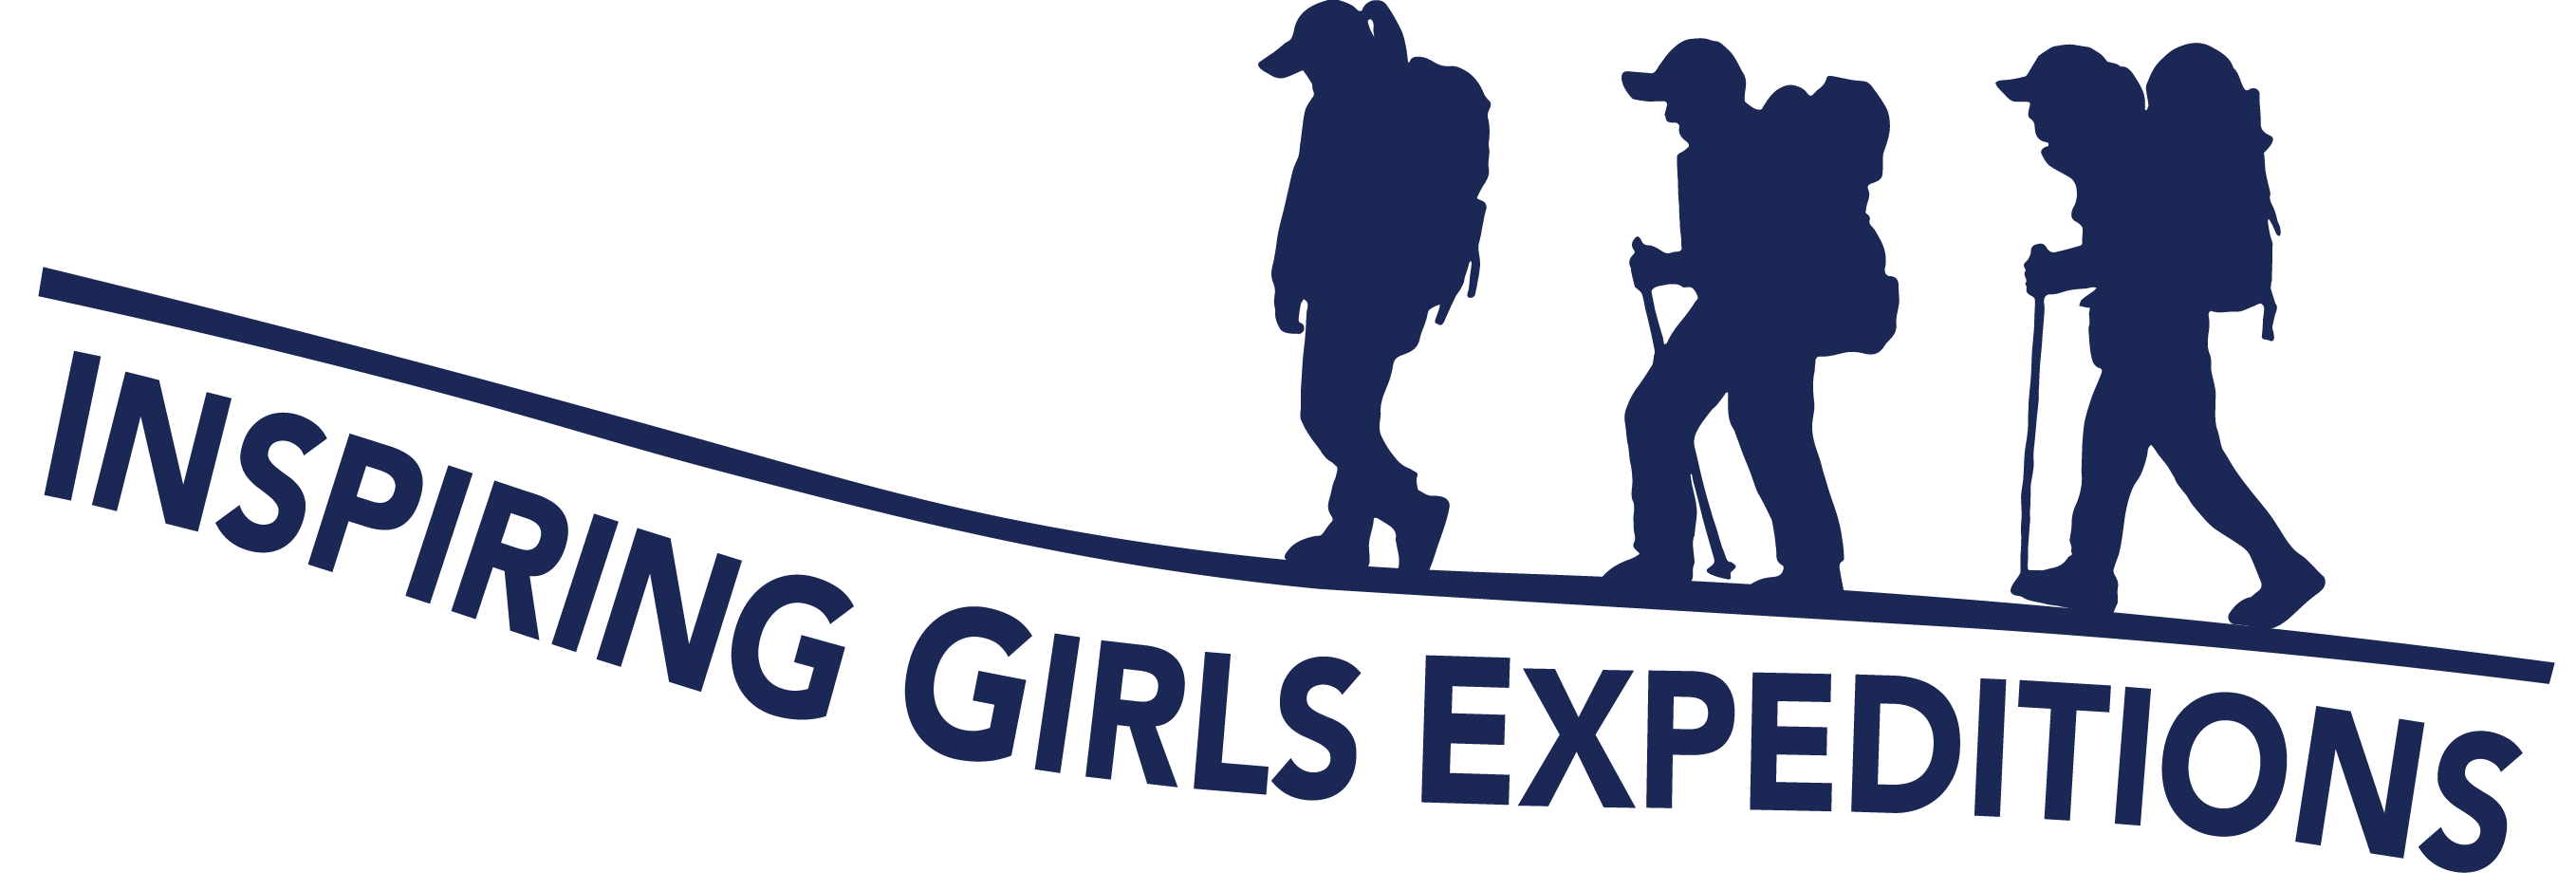 Inspiring Girls Expeditions logo